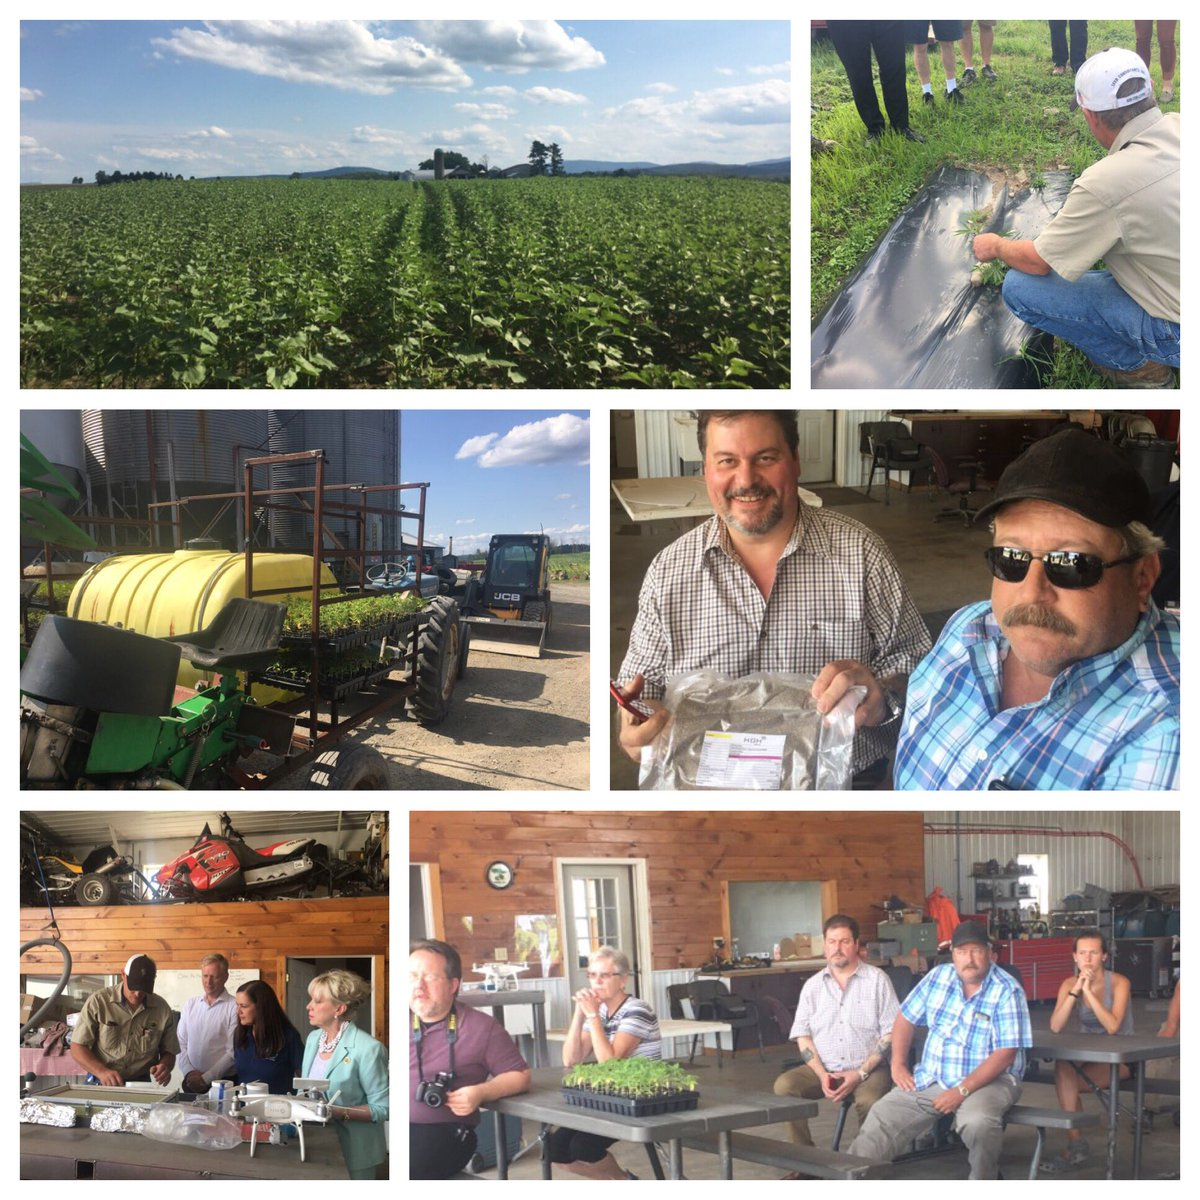 Touring Brown Hill Farms in Lemon Twp & learning of their new endeavor to grown hemp for various commercial uses.